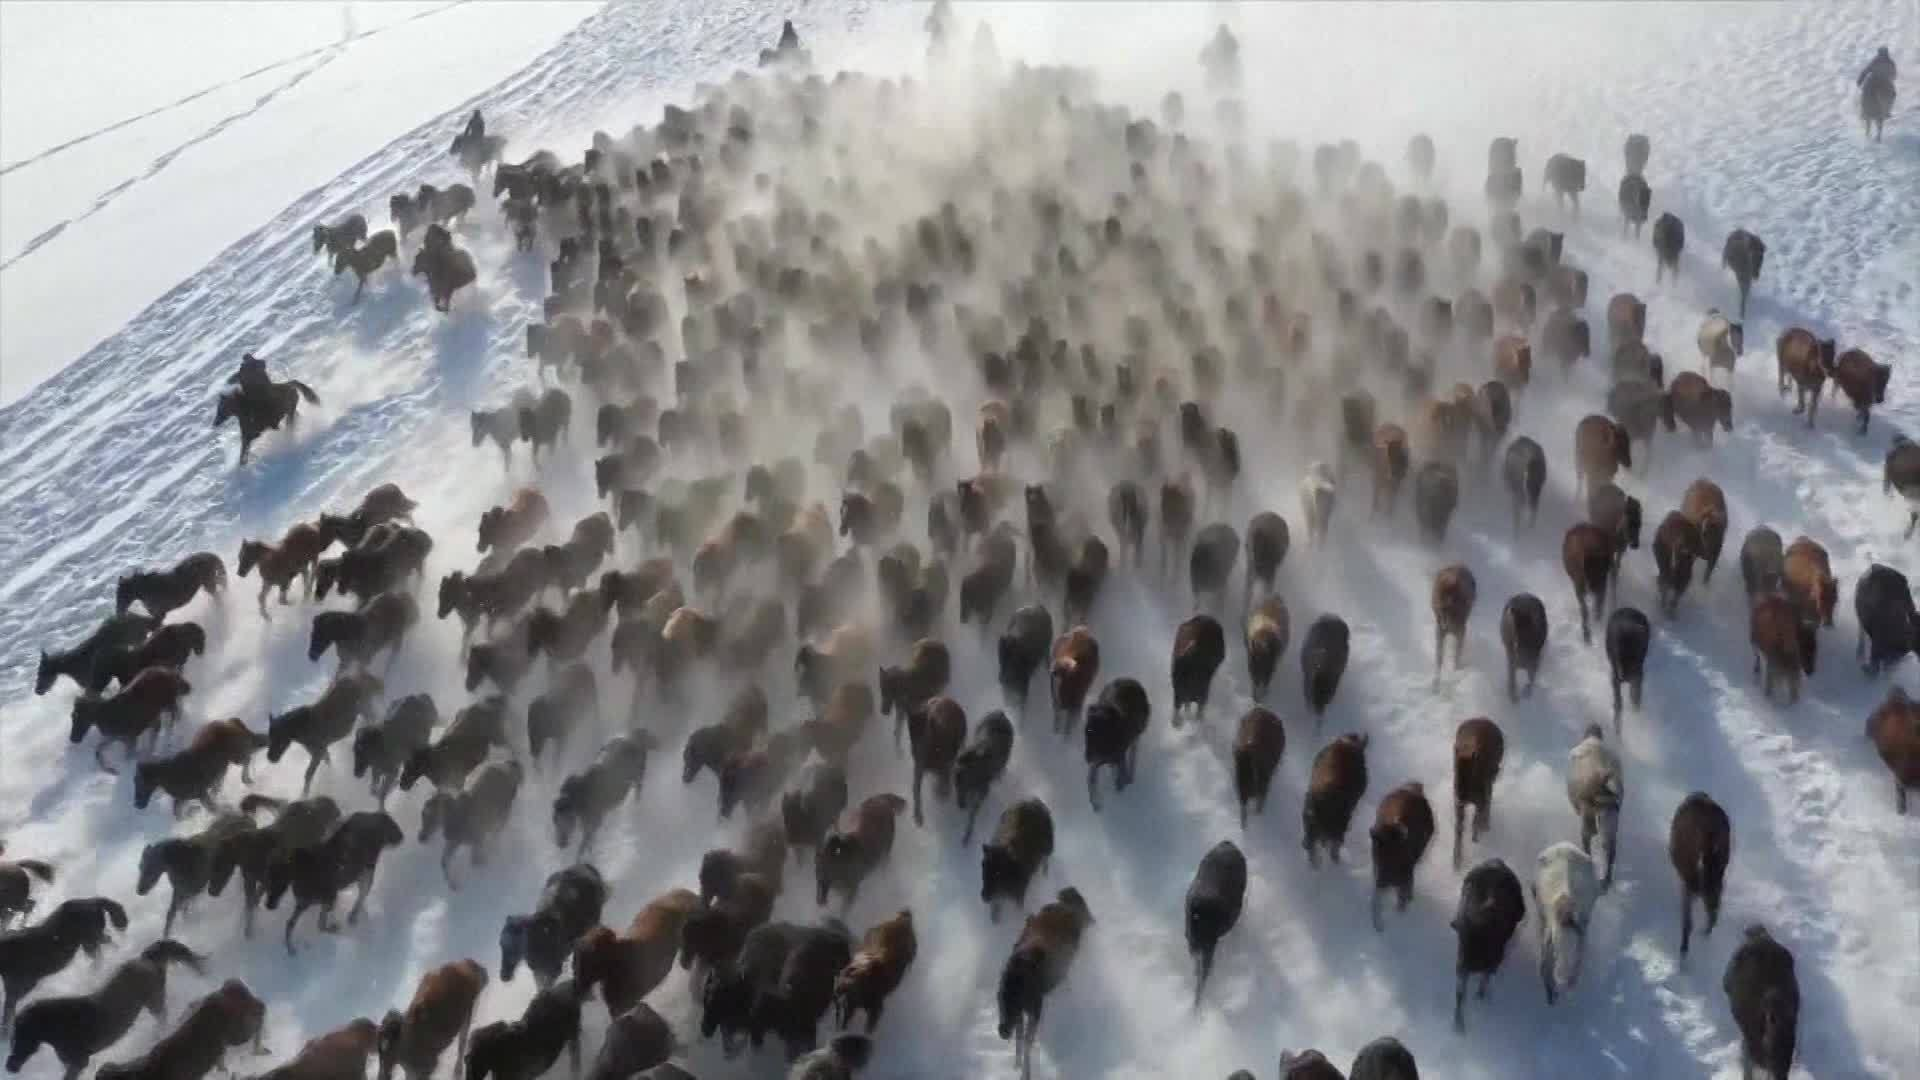 VIDEO: Thousands of horses gallop through snow